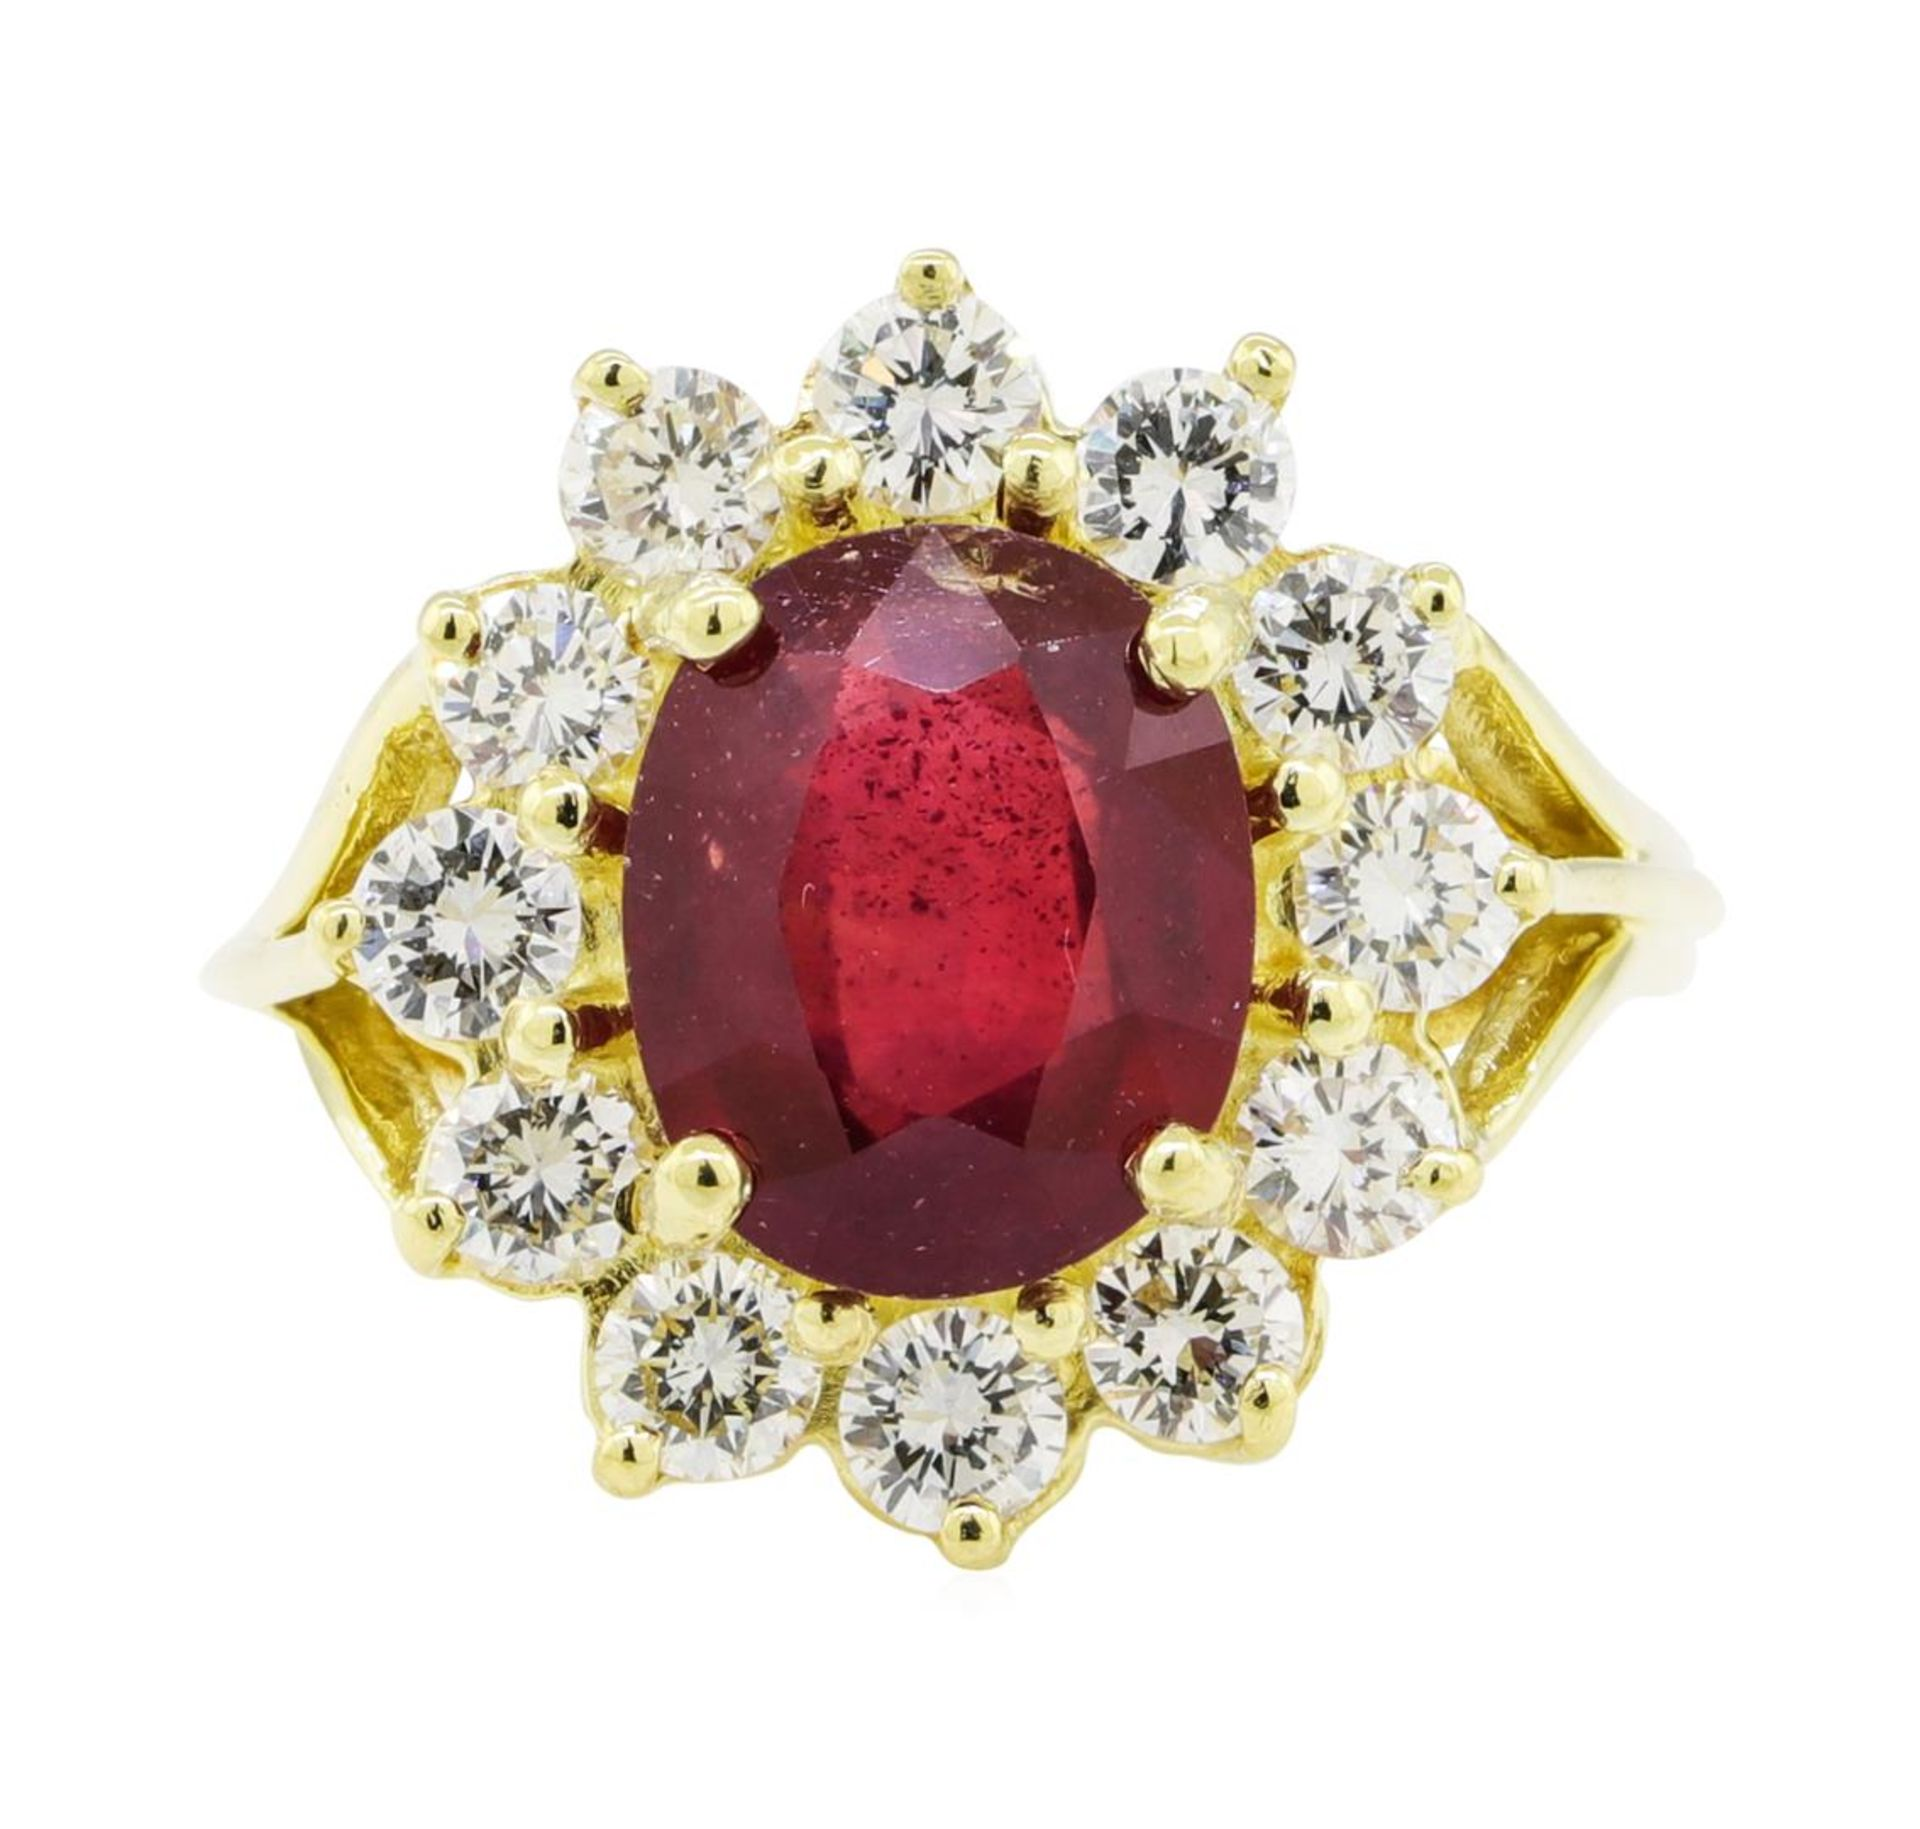 5.51 ctw Ruby and Diamond Ring - 18KT Yellow Gold - Image 2 of 5